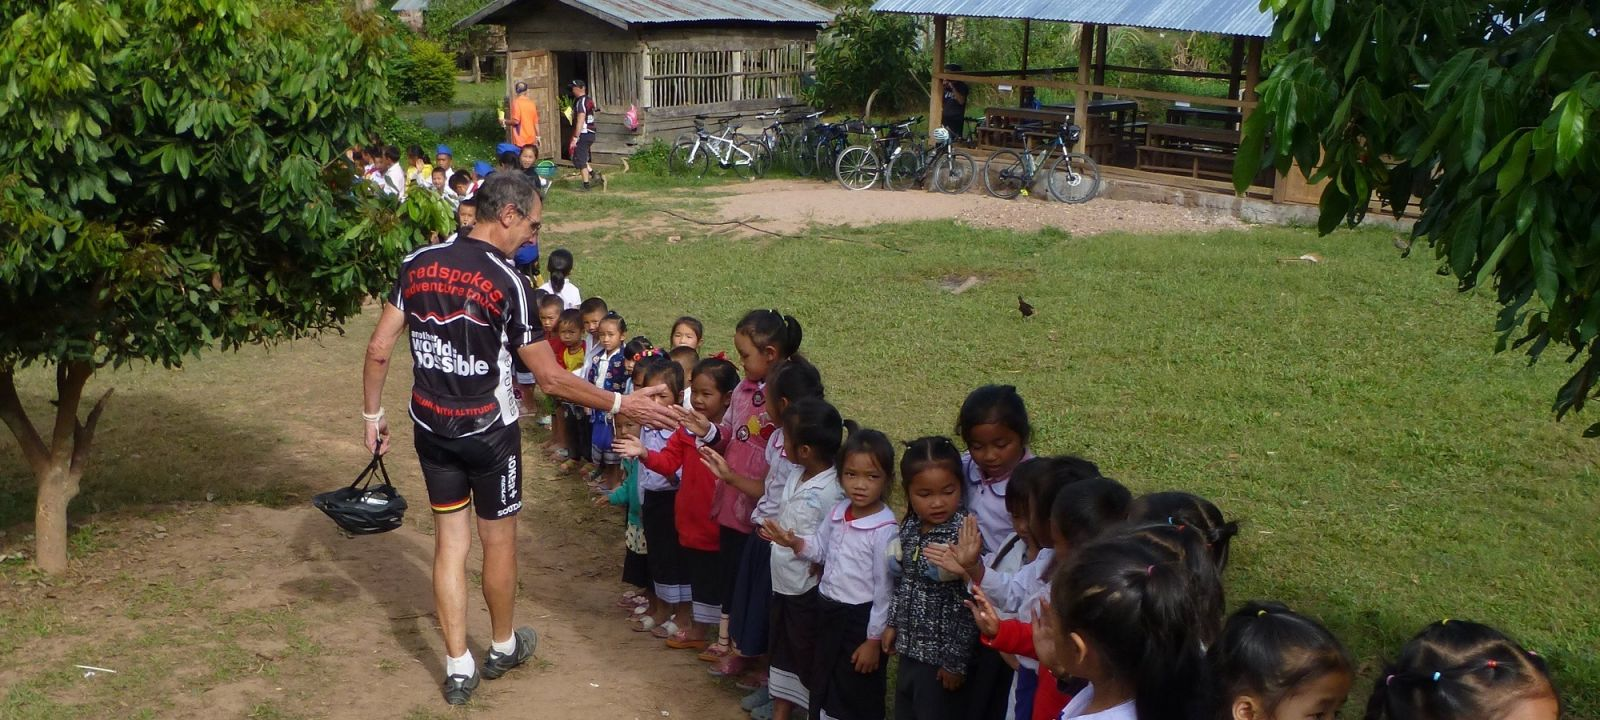 Cycling Vietnam, Laos and Thailand